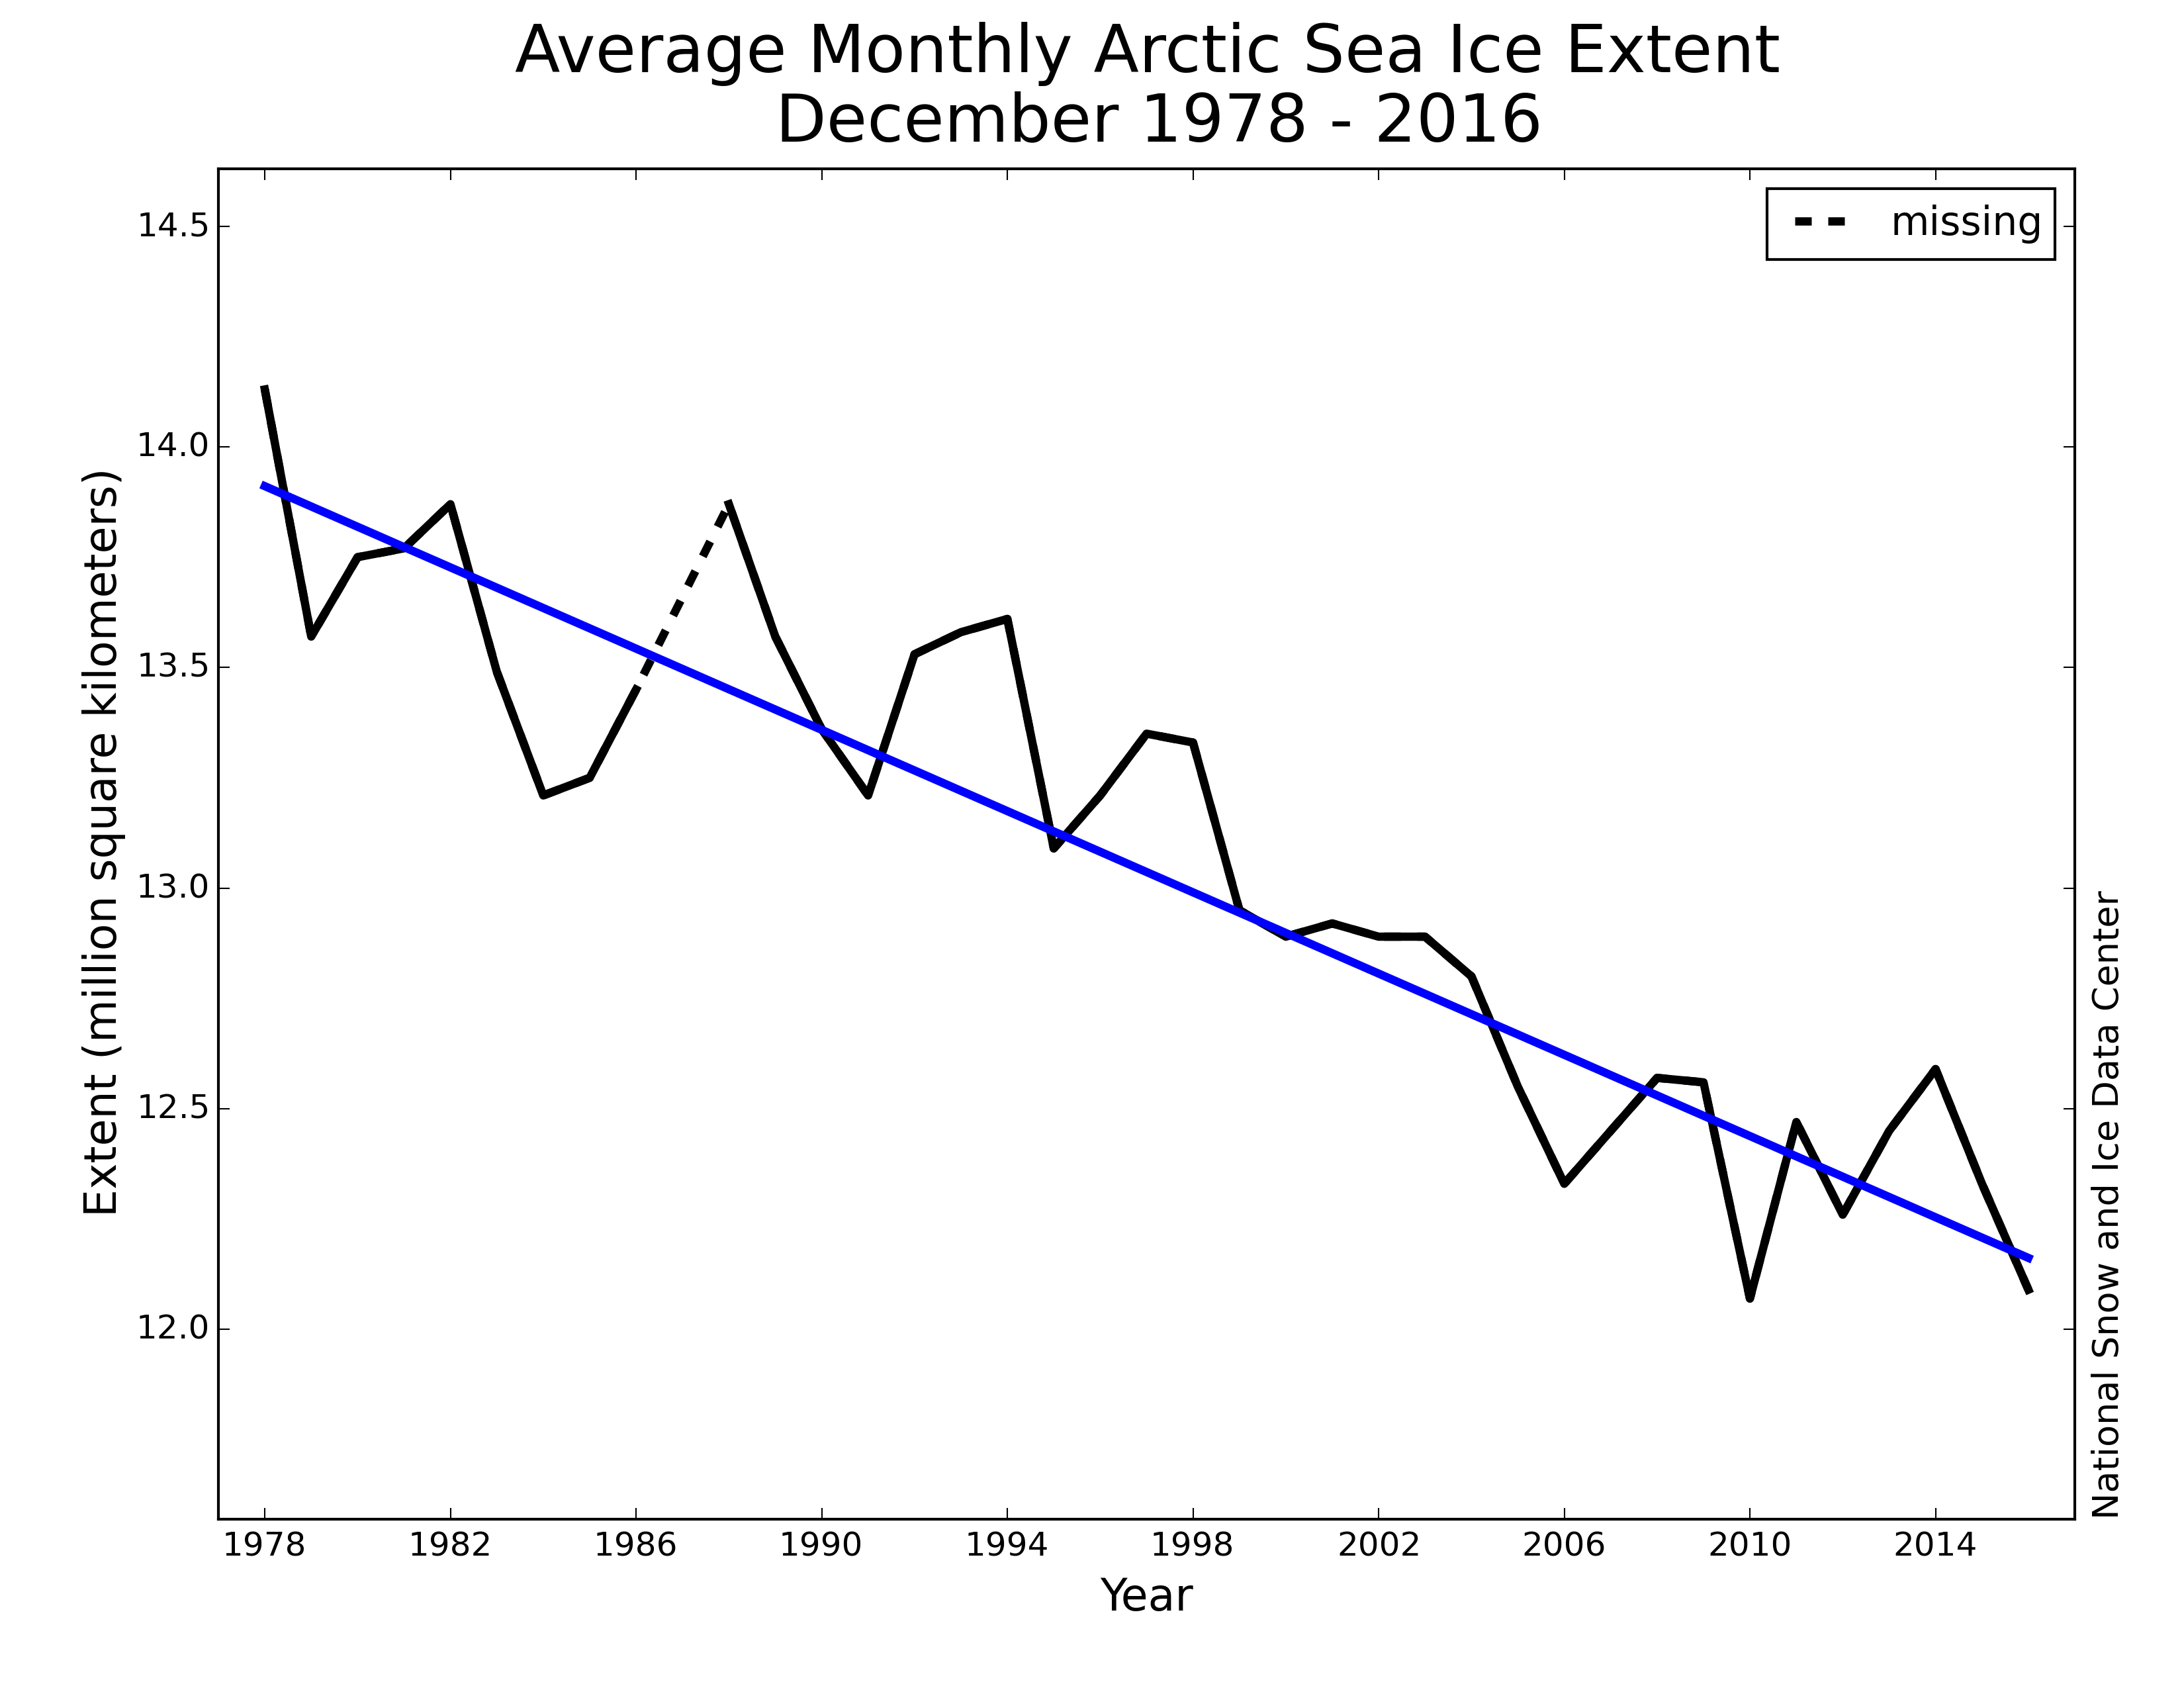 to what extent was the decline The linear rate of decline for august sea ice extent is 75,000 square kilometers (29,000 square miles) per year, or 104 percent per decade relative to the 1981 to 2010 average ice loss during the month was 178 million square kilometers (687,000 square miles), which is nearly the same as the 1981 to 2010 average august decrease.